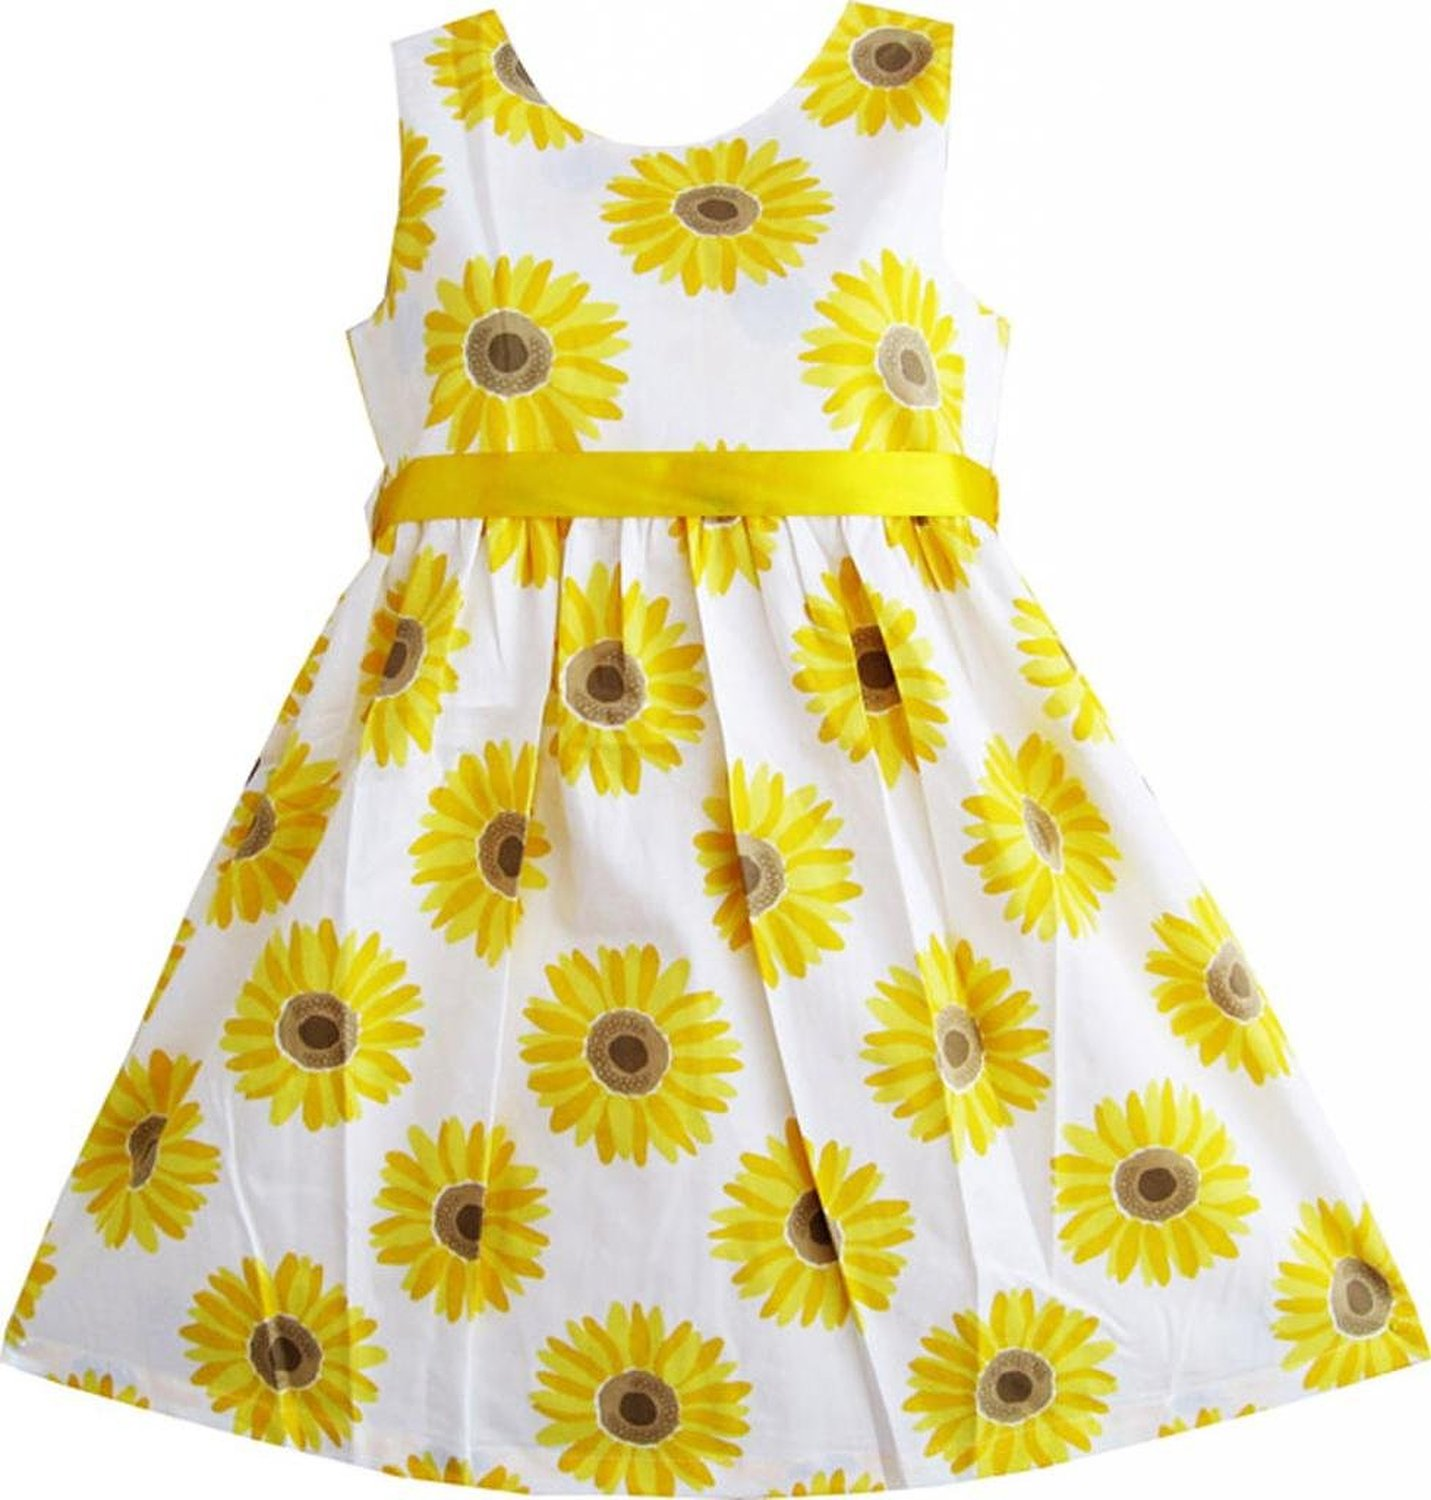 Amazon.com: Sunny Fashion Little Girls' Dress Yellow Sunflower School Uniform Party: Playwear Dresses: Clothing